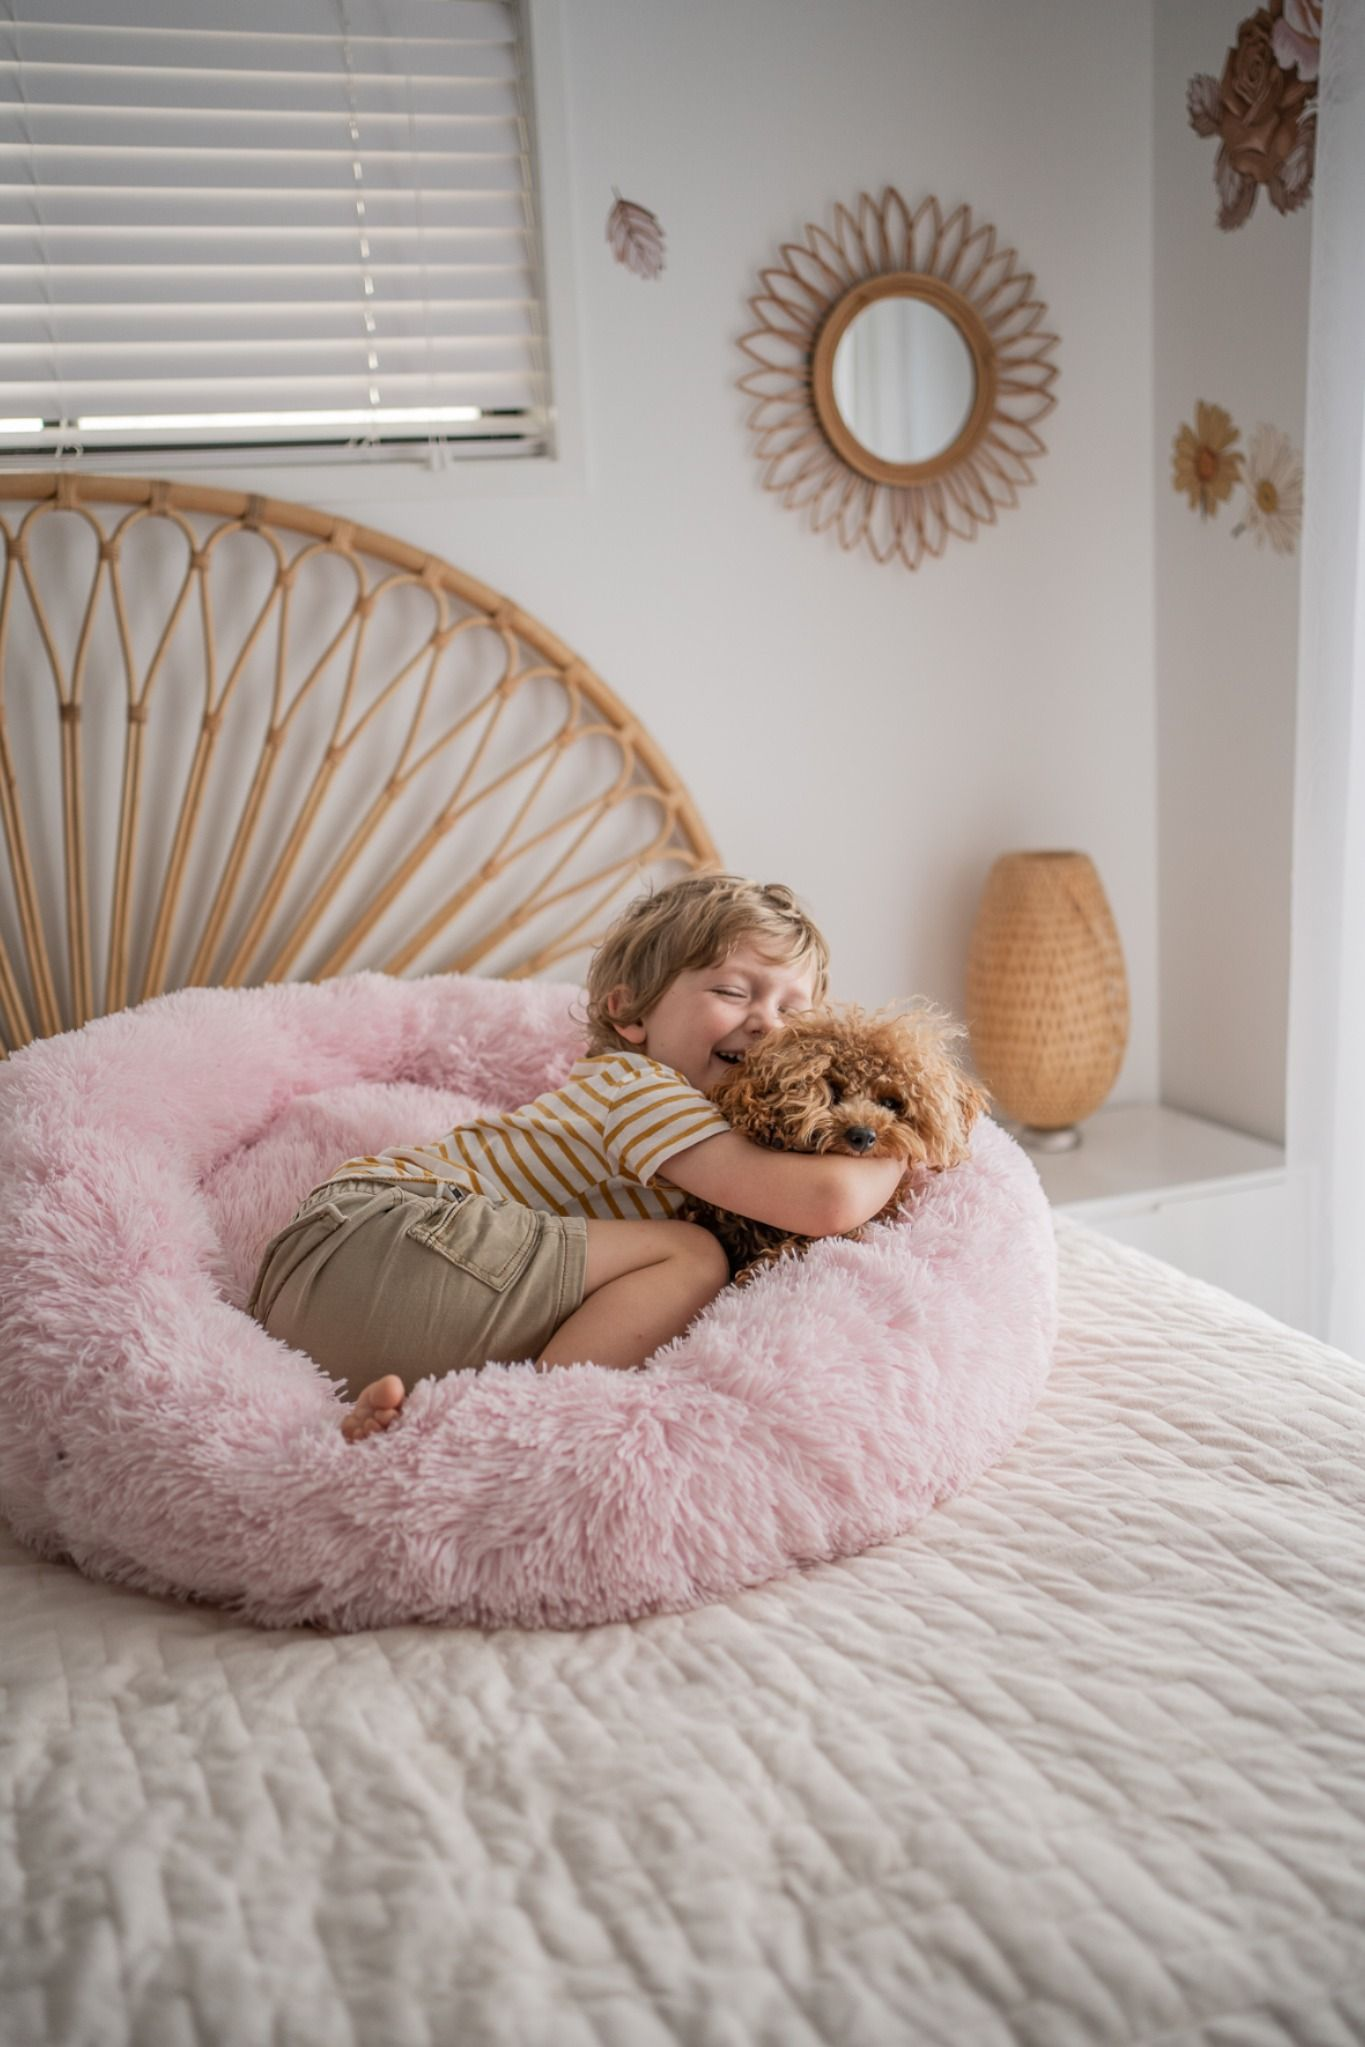 Calming Pet Bed in 2020 Pet calming, Toddler girl room